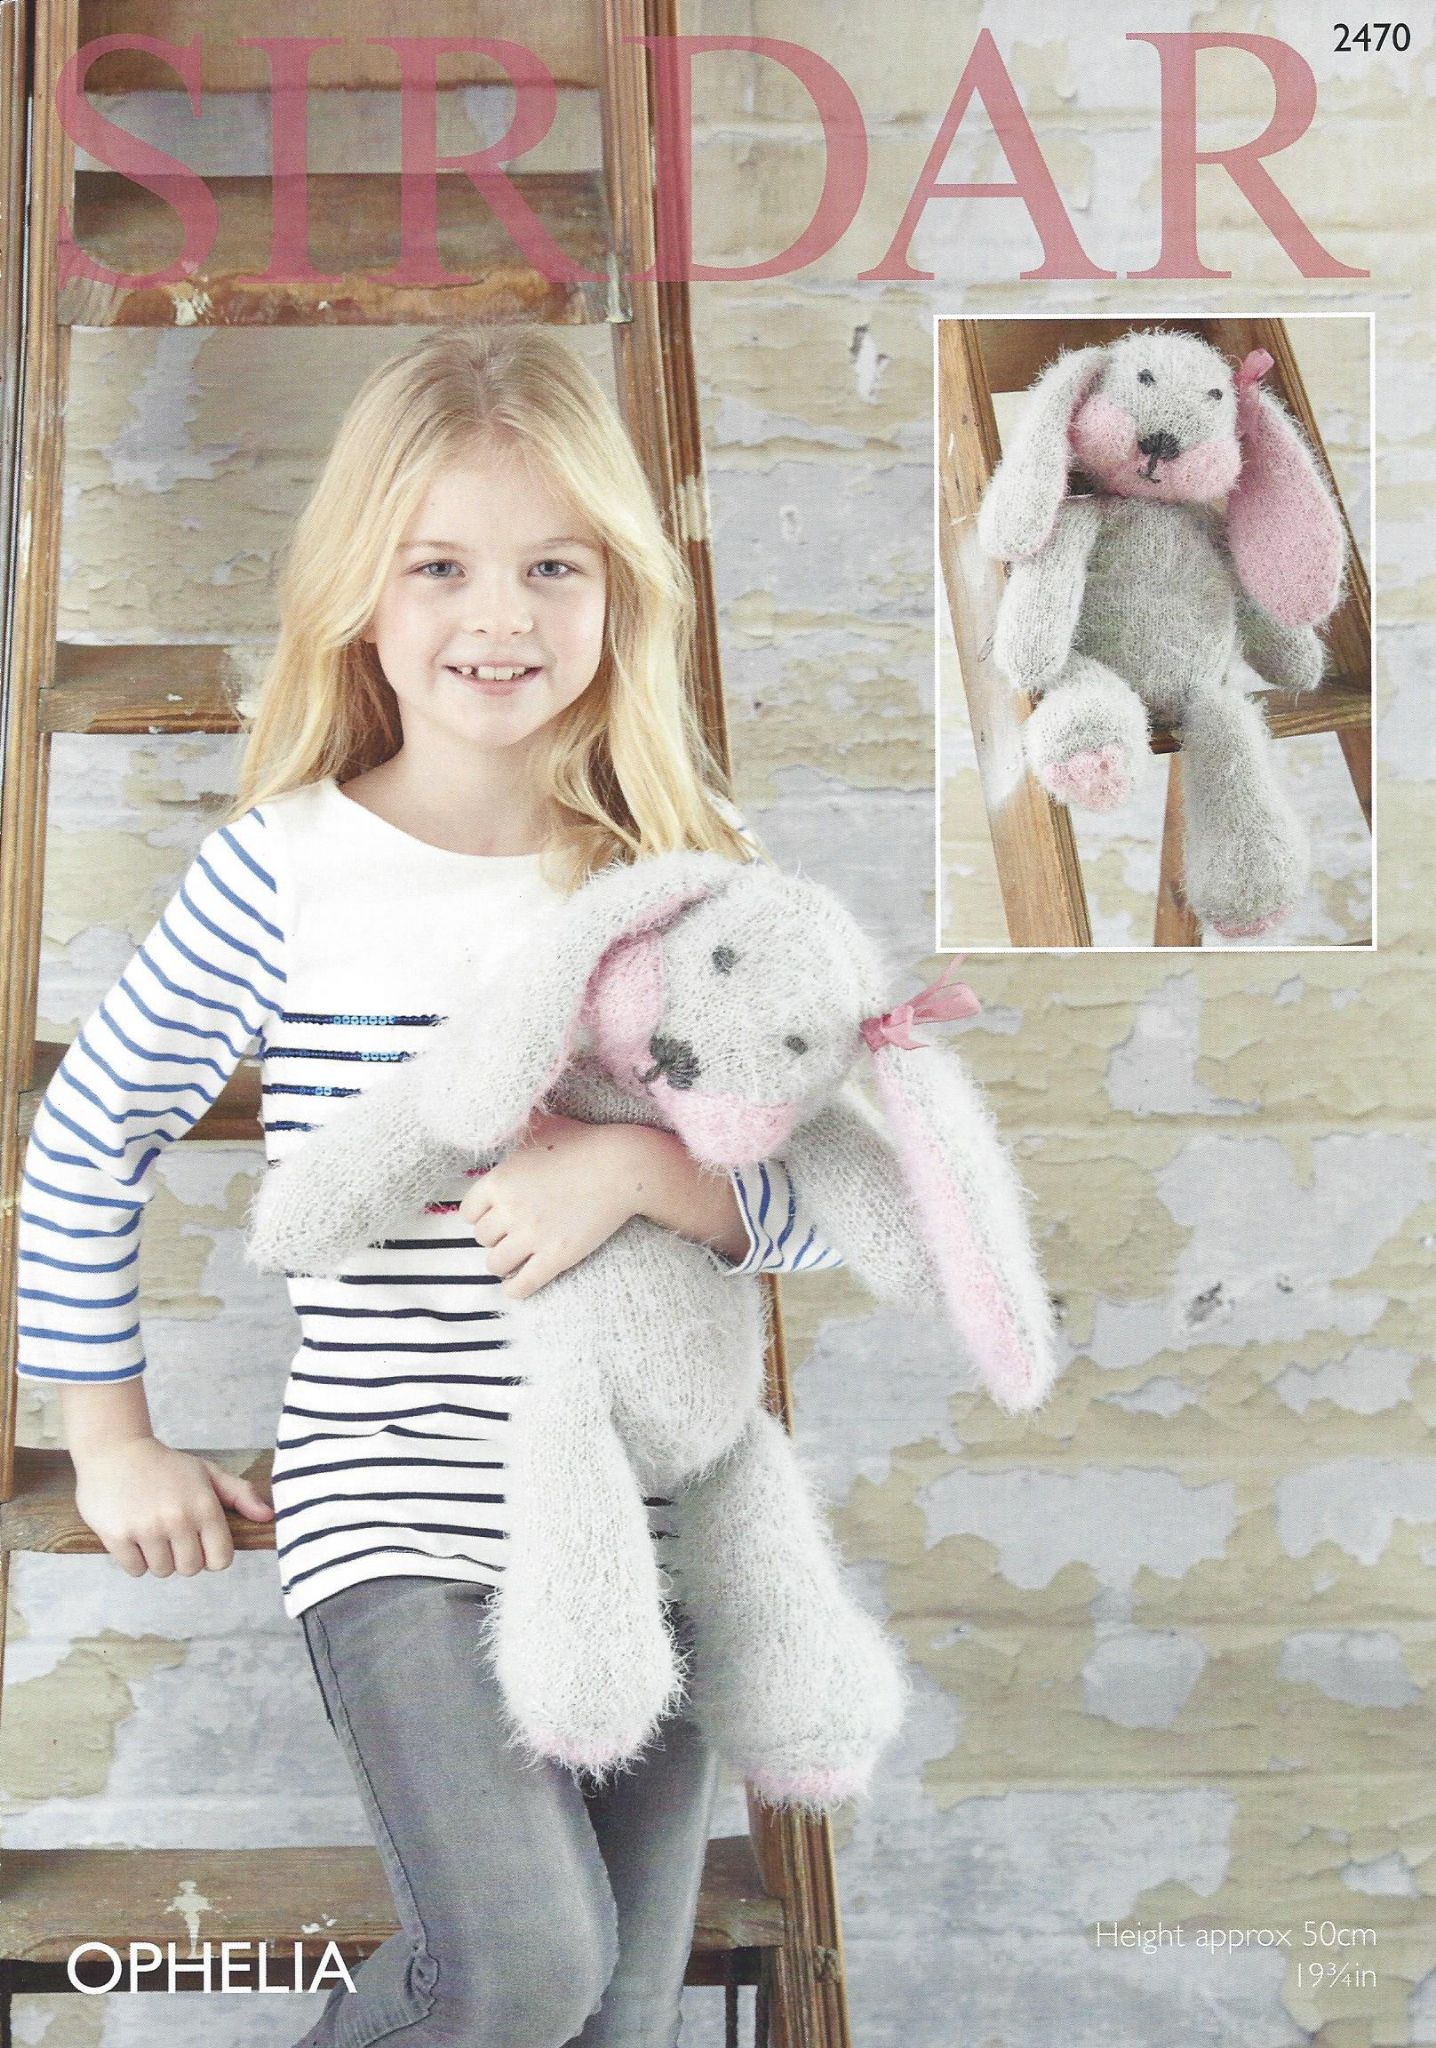 Sirdar Ophelia - 2470 Rabbit Toy Knitting Pattern